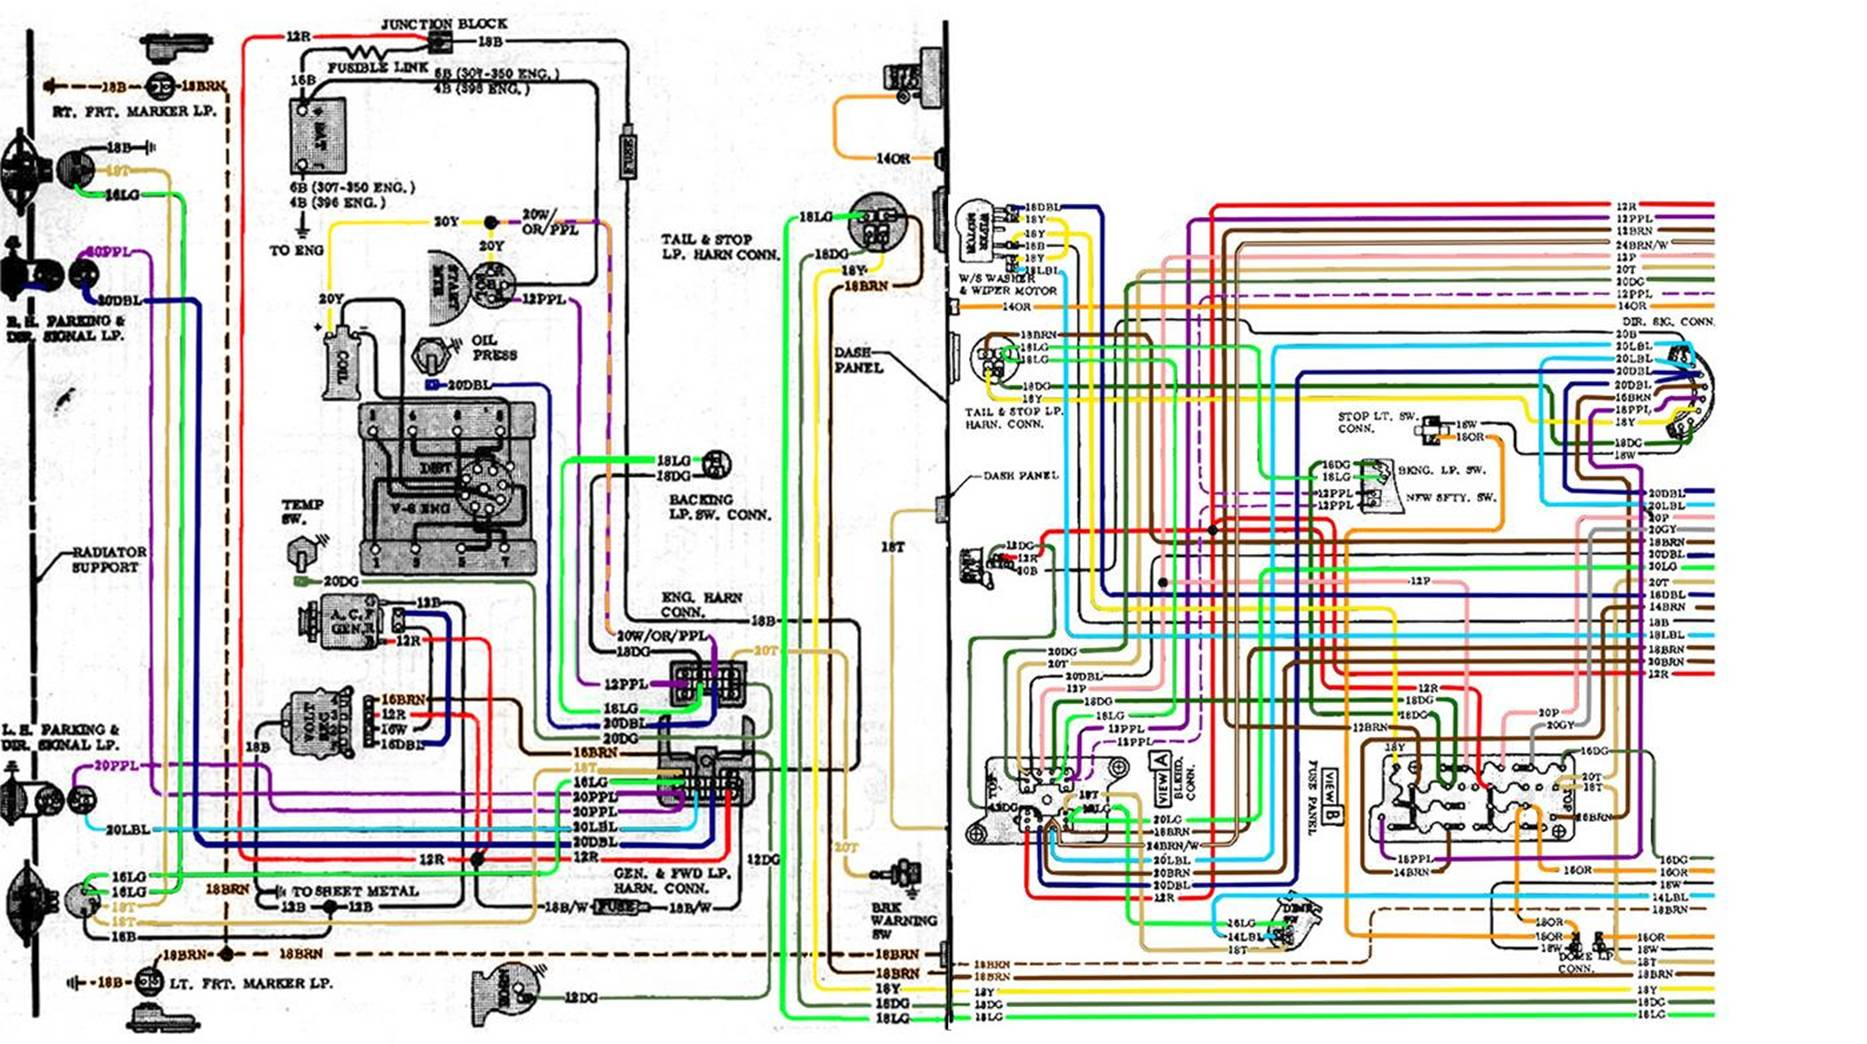 72 Impala Starter Wiring Diagram Schematics Diagrams 12 Volt Gm Blazer Heater Circuit Symbols U2022 Rh Armkandy Co Headlight Chevy